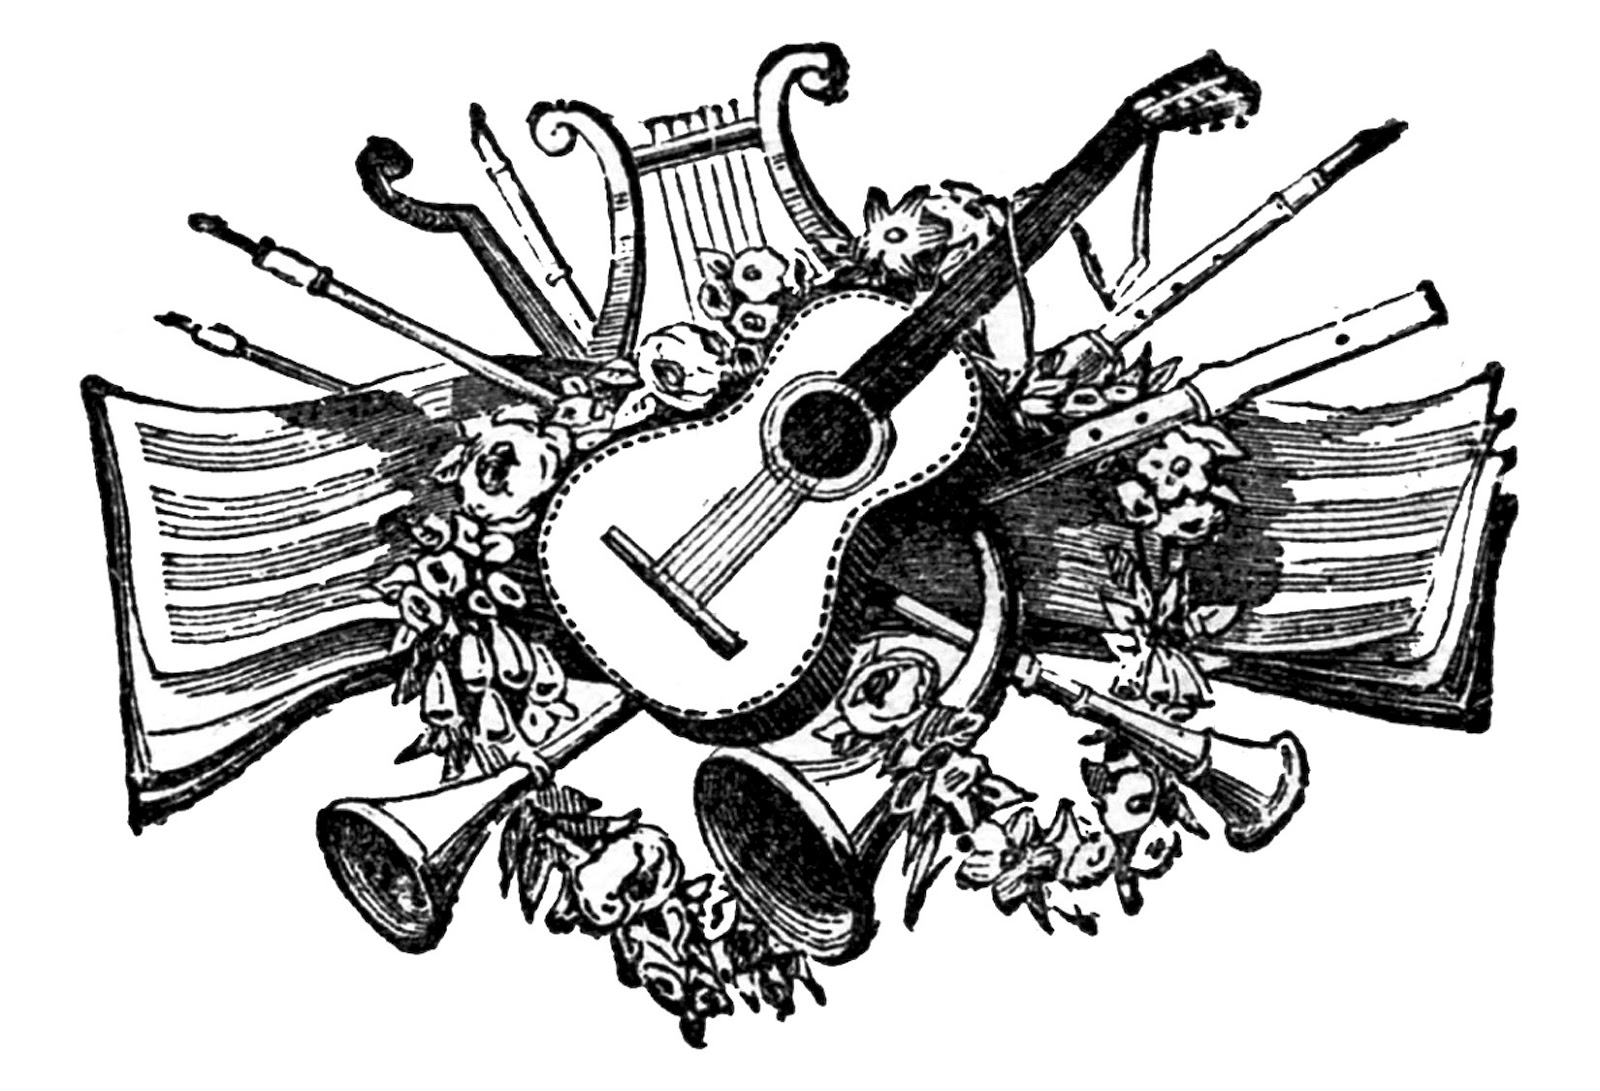 Christmas instruments clipart picture freeuse stock Vintage Clip Art - Antique Musical Printers Ornaments - The Graphics ... picture freeuse stock